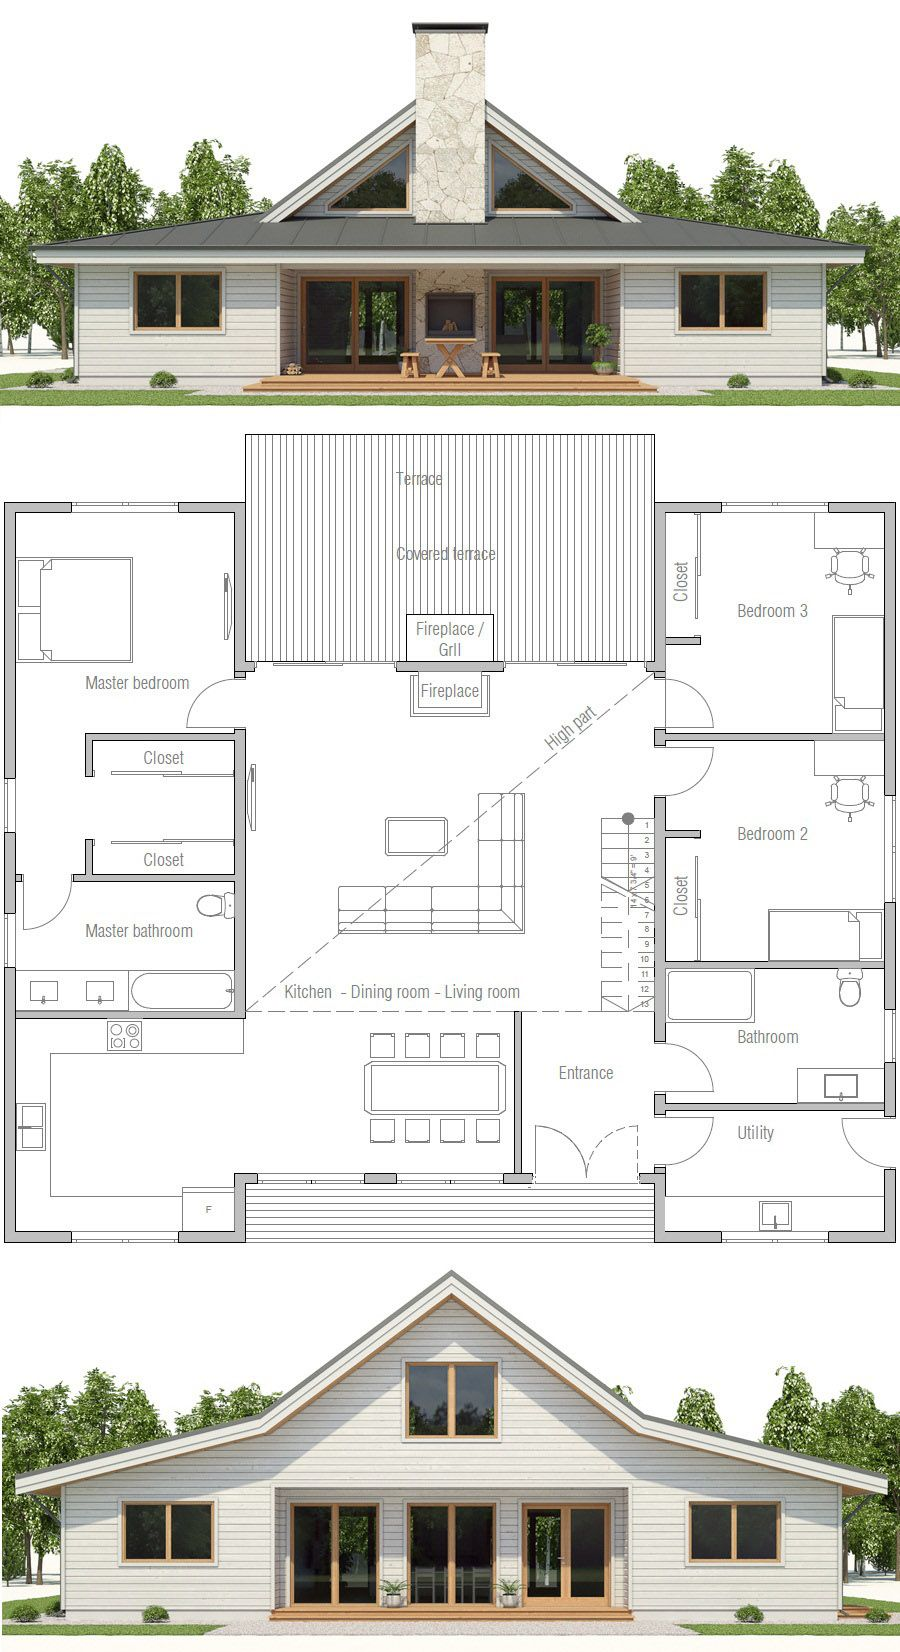 Architecture Home Plans House Plans Floor Plans House Designs Homedecor Newhomes Homeplans H House Plans Farmhouse Container House Plans New House Plans